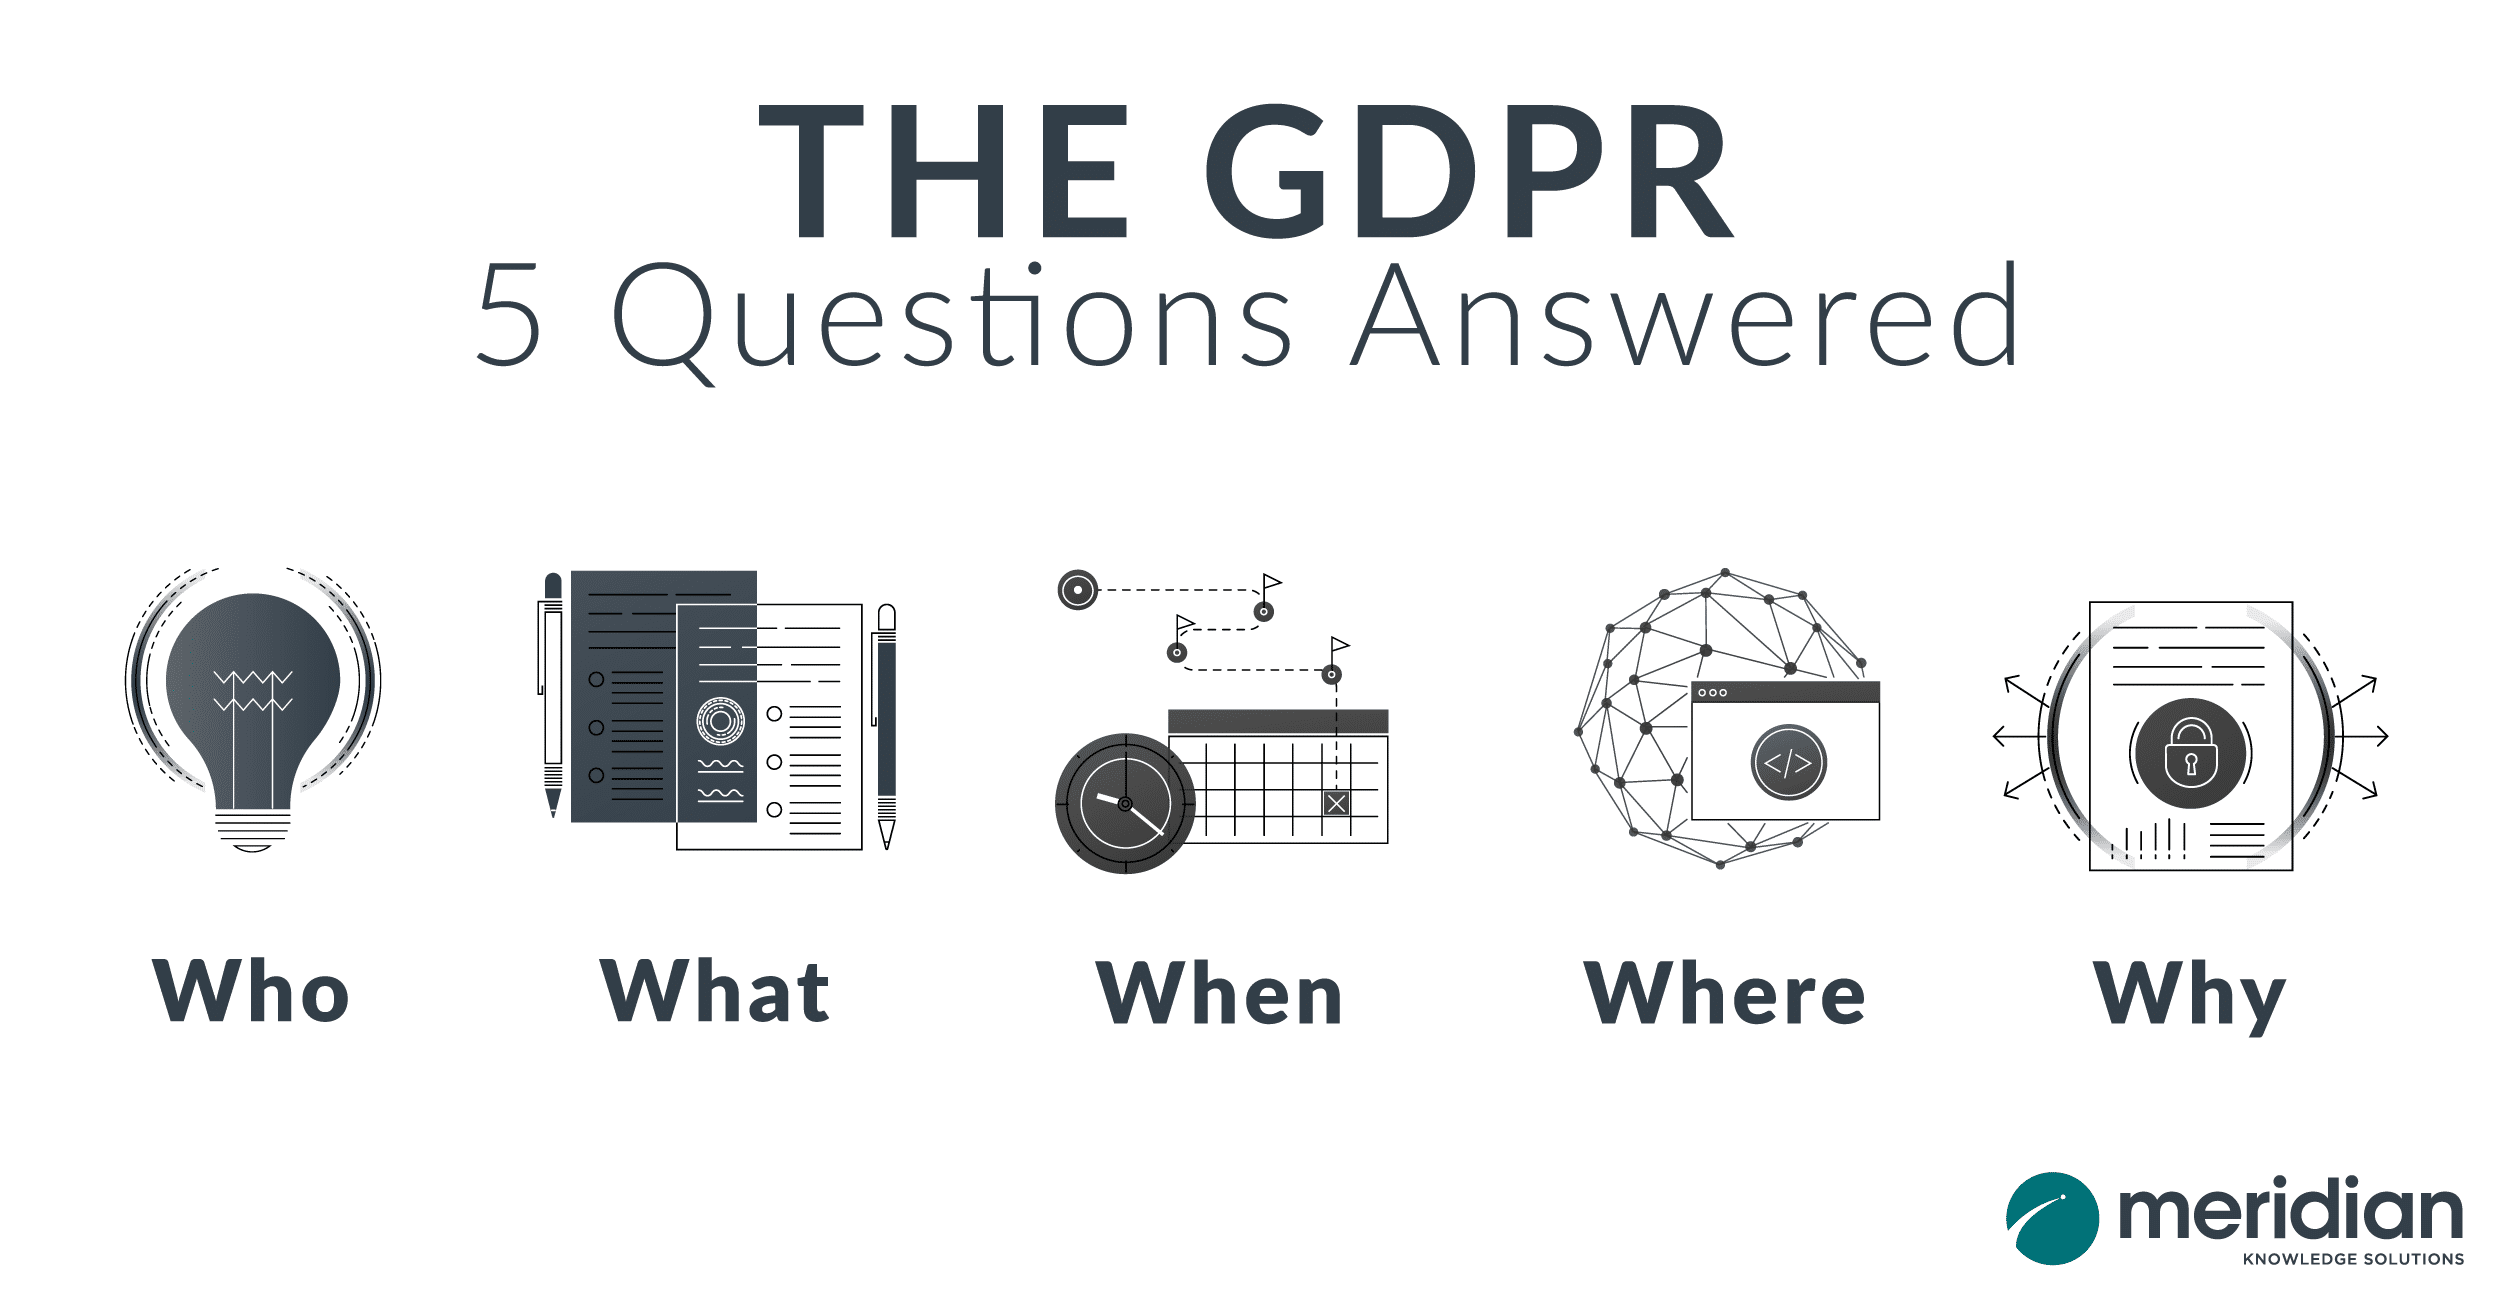 GDPR: 5 Questions Answered